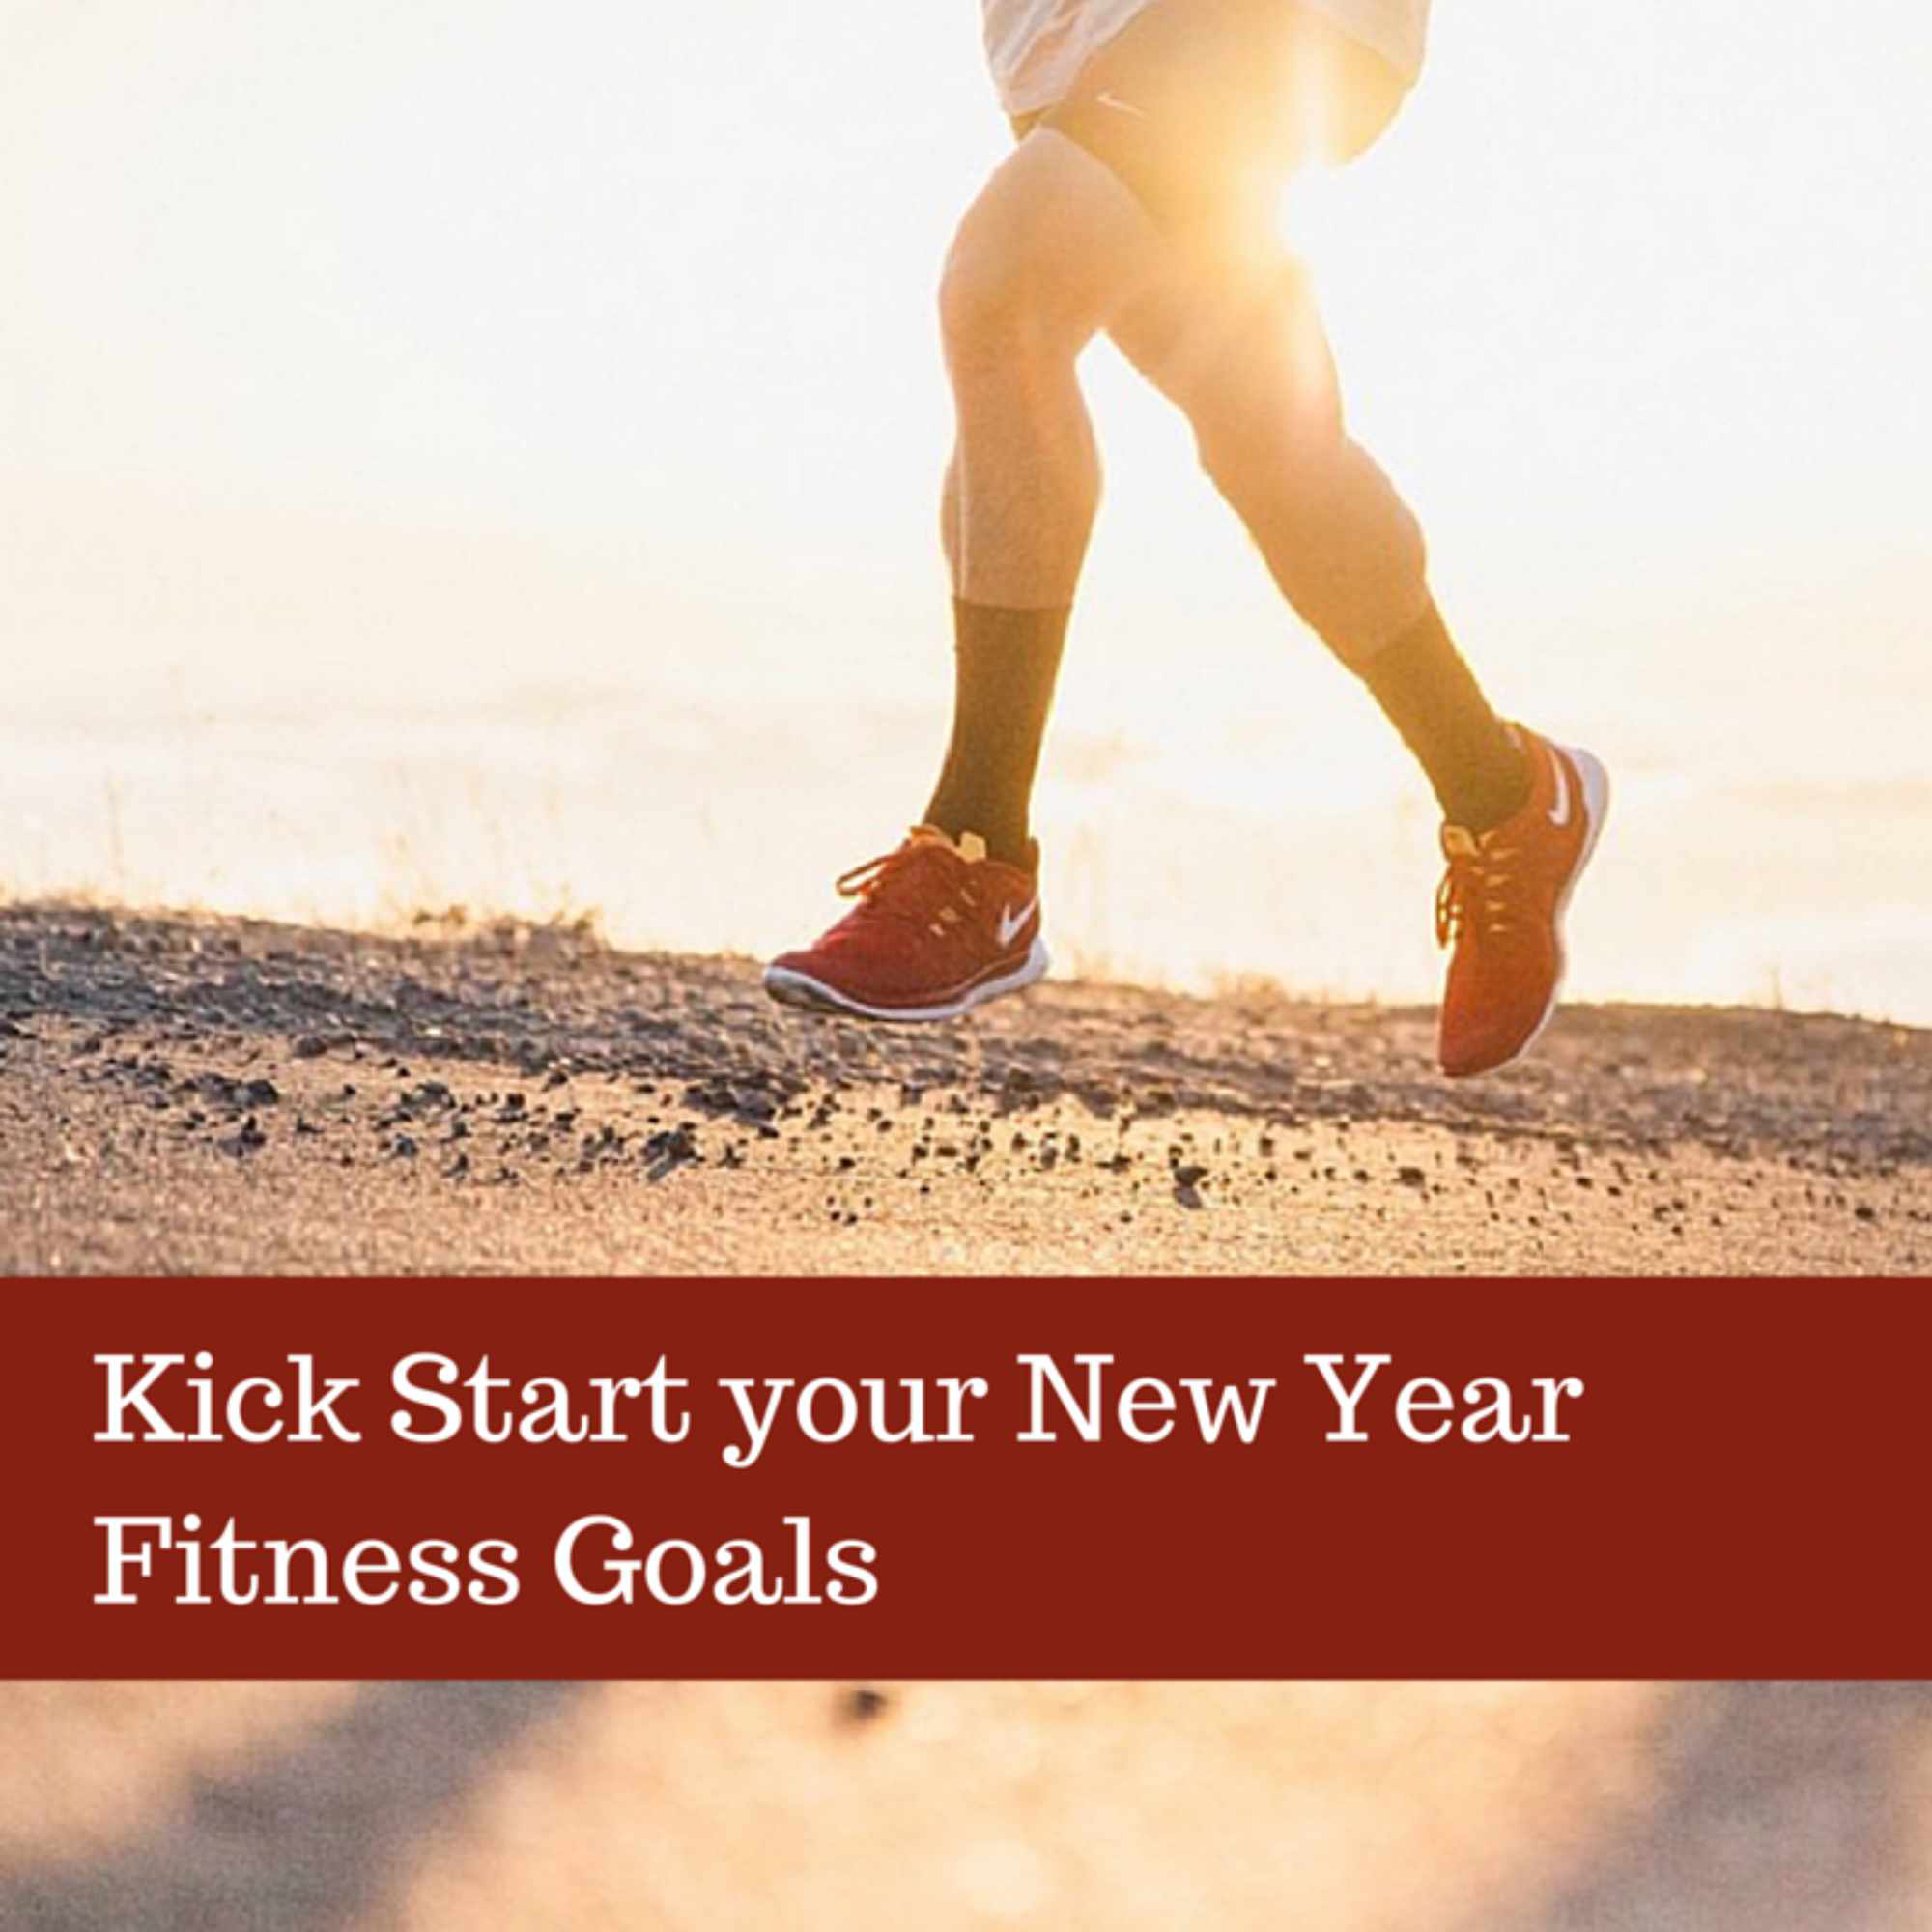 Kick start your new year health and fitness goals.